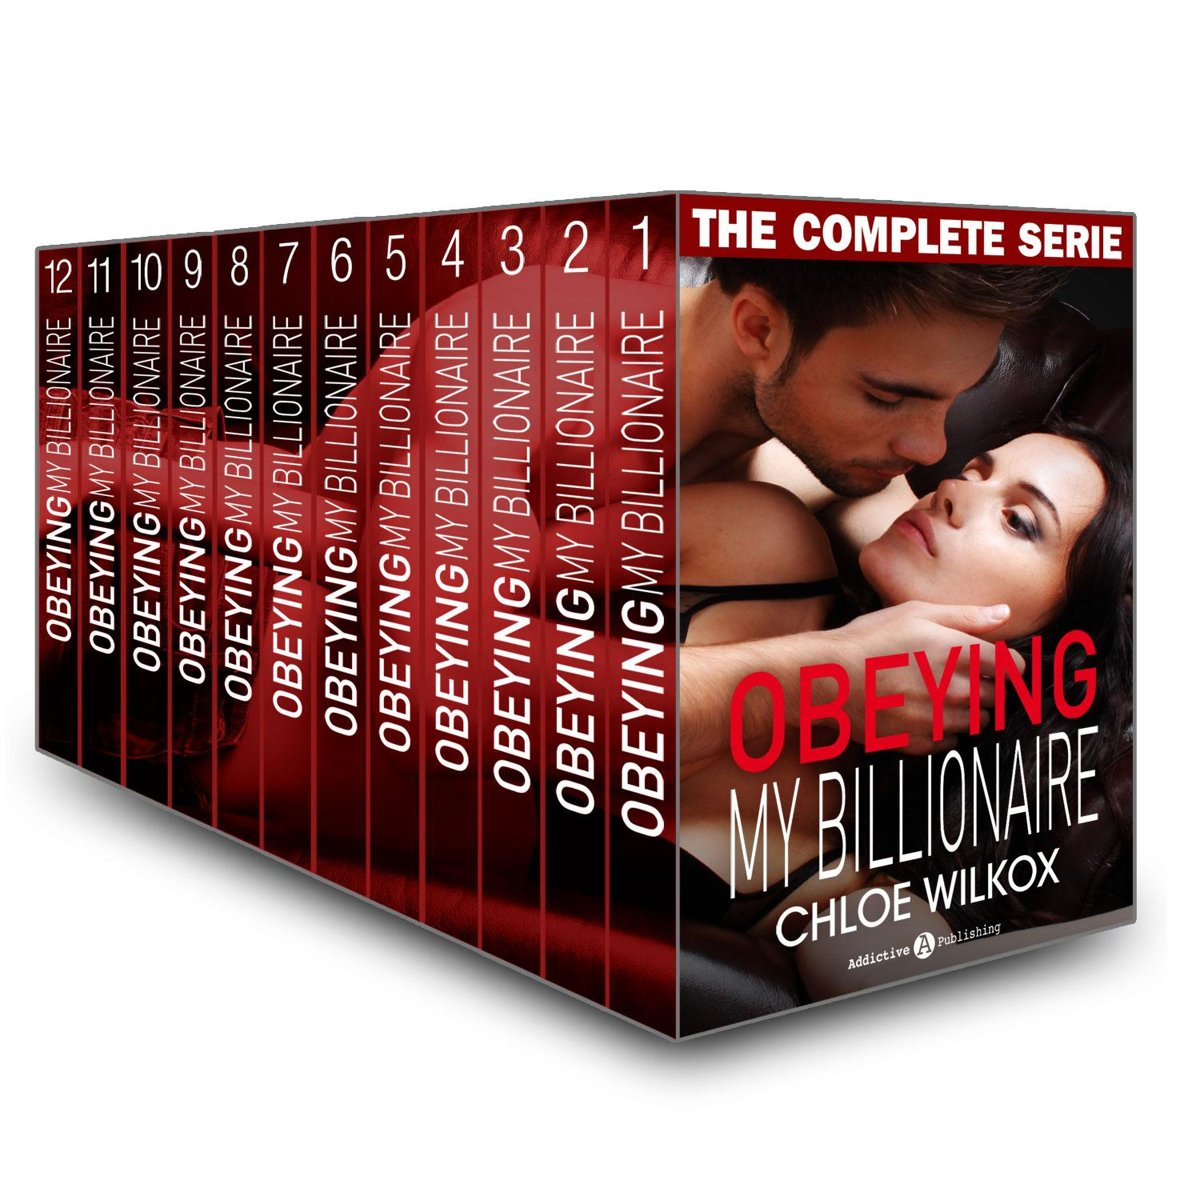 Obeying my Billionaire (The Complete Serie)